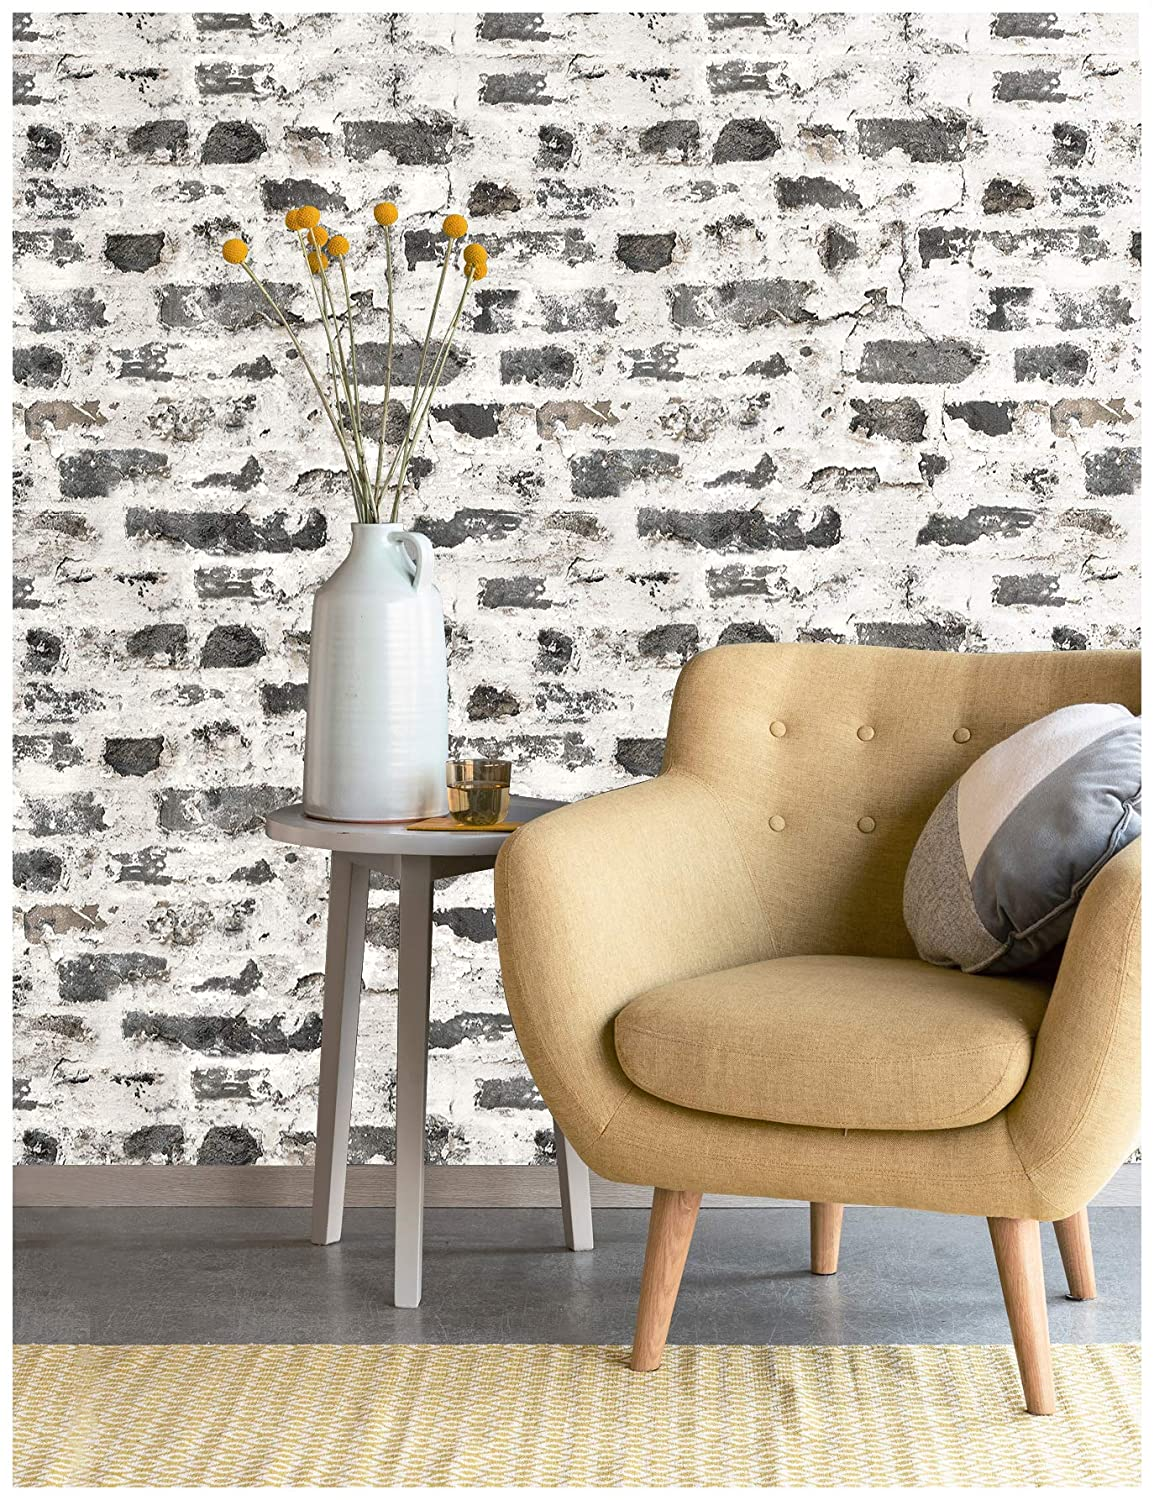 Haokhome 27102 Distressed Faux Brick Wallpaper Whitewash Gray For Home Kitchen Decor 20 8 X 33ft